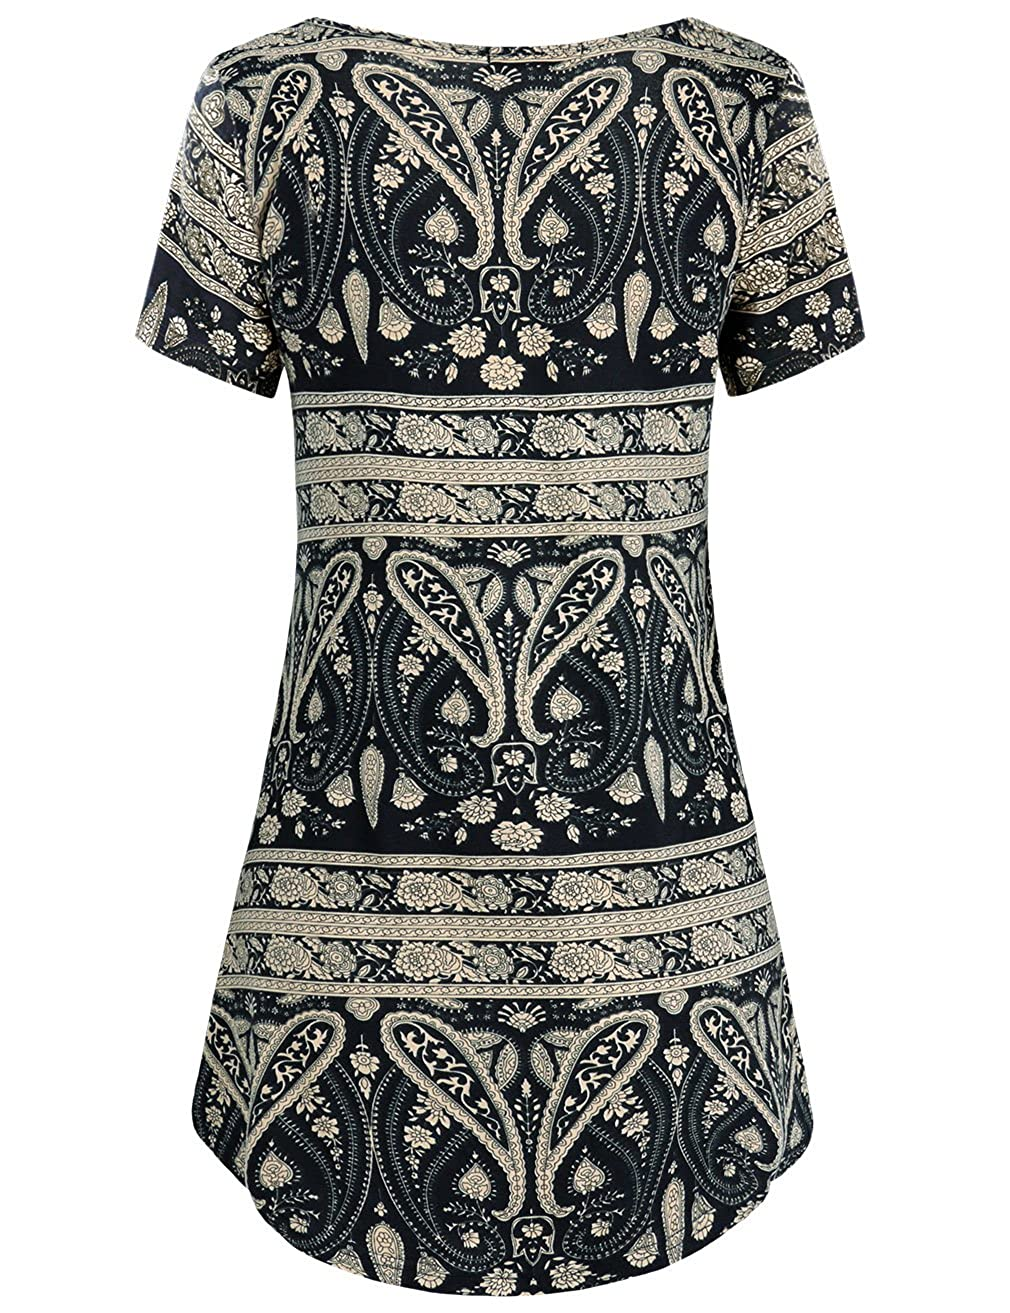 Moosungeek Womens Floral Print Tunic Shirts Pleated Flowy Blouse